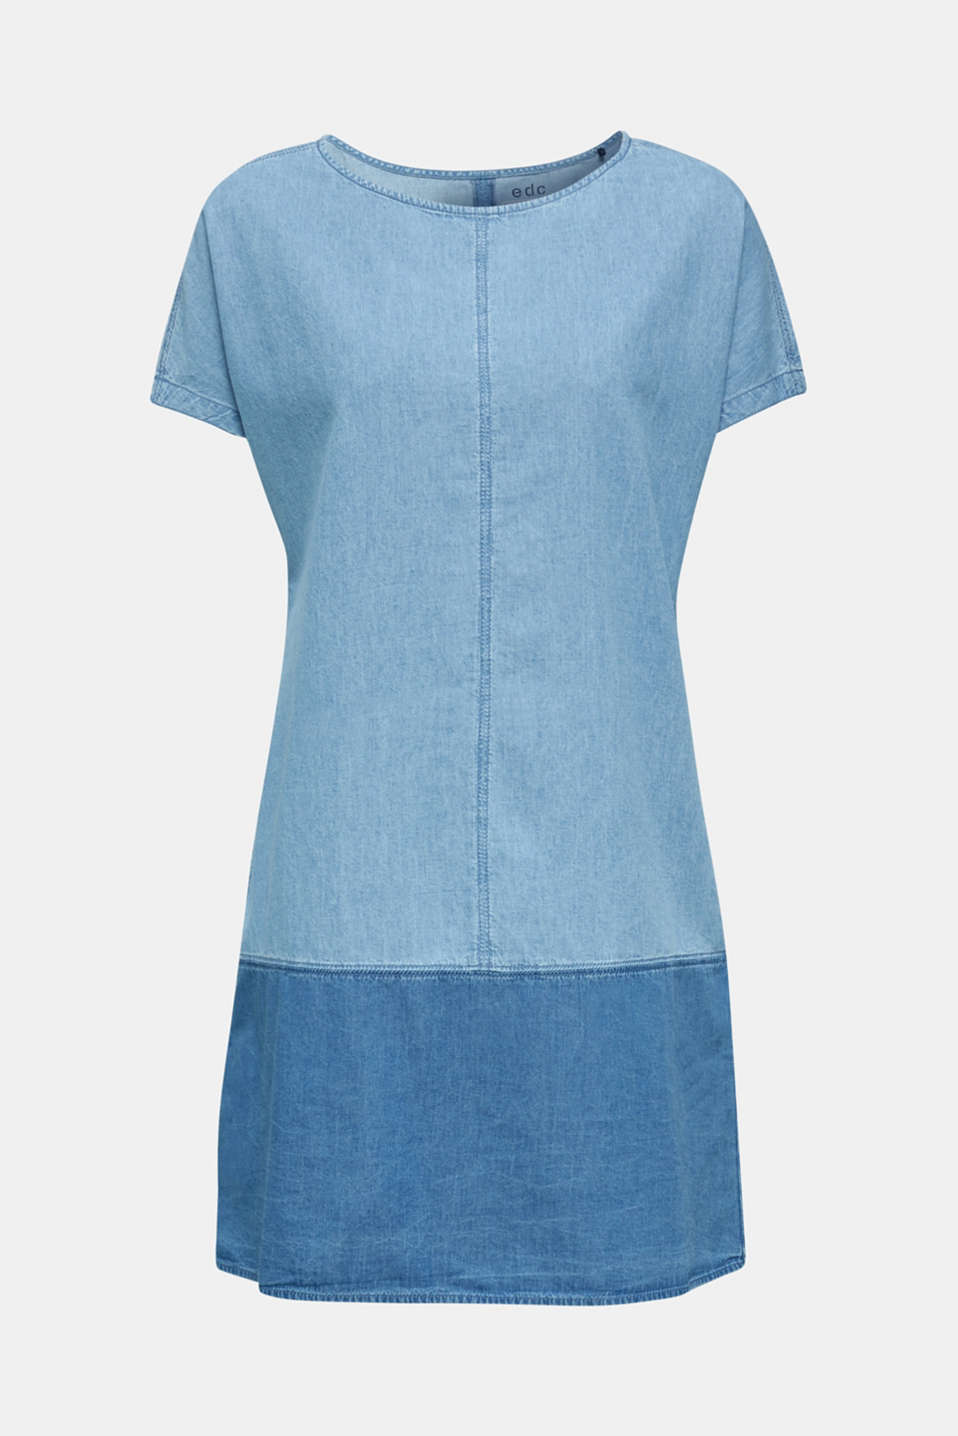 Two-tone denim dress, 100% cotton, BLUE MEDIUM WASH, detail image number 7